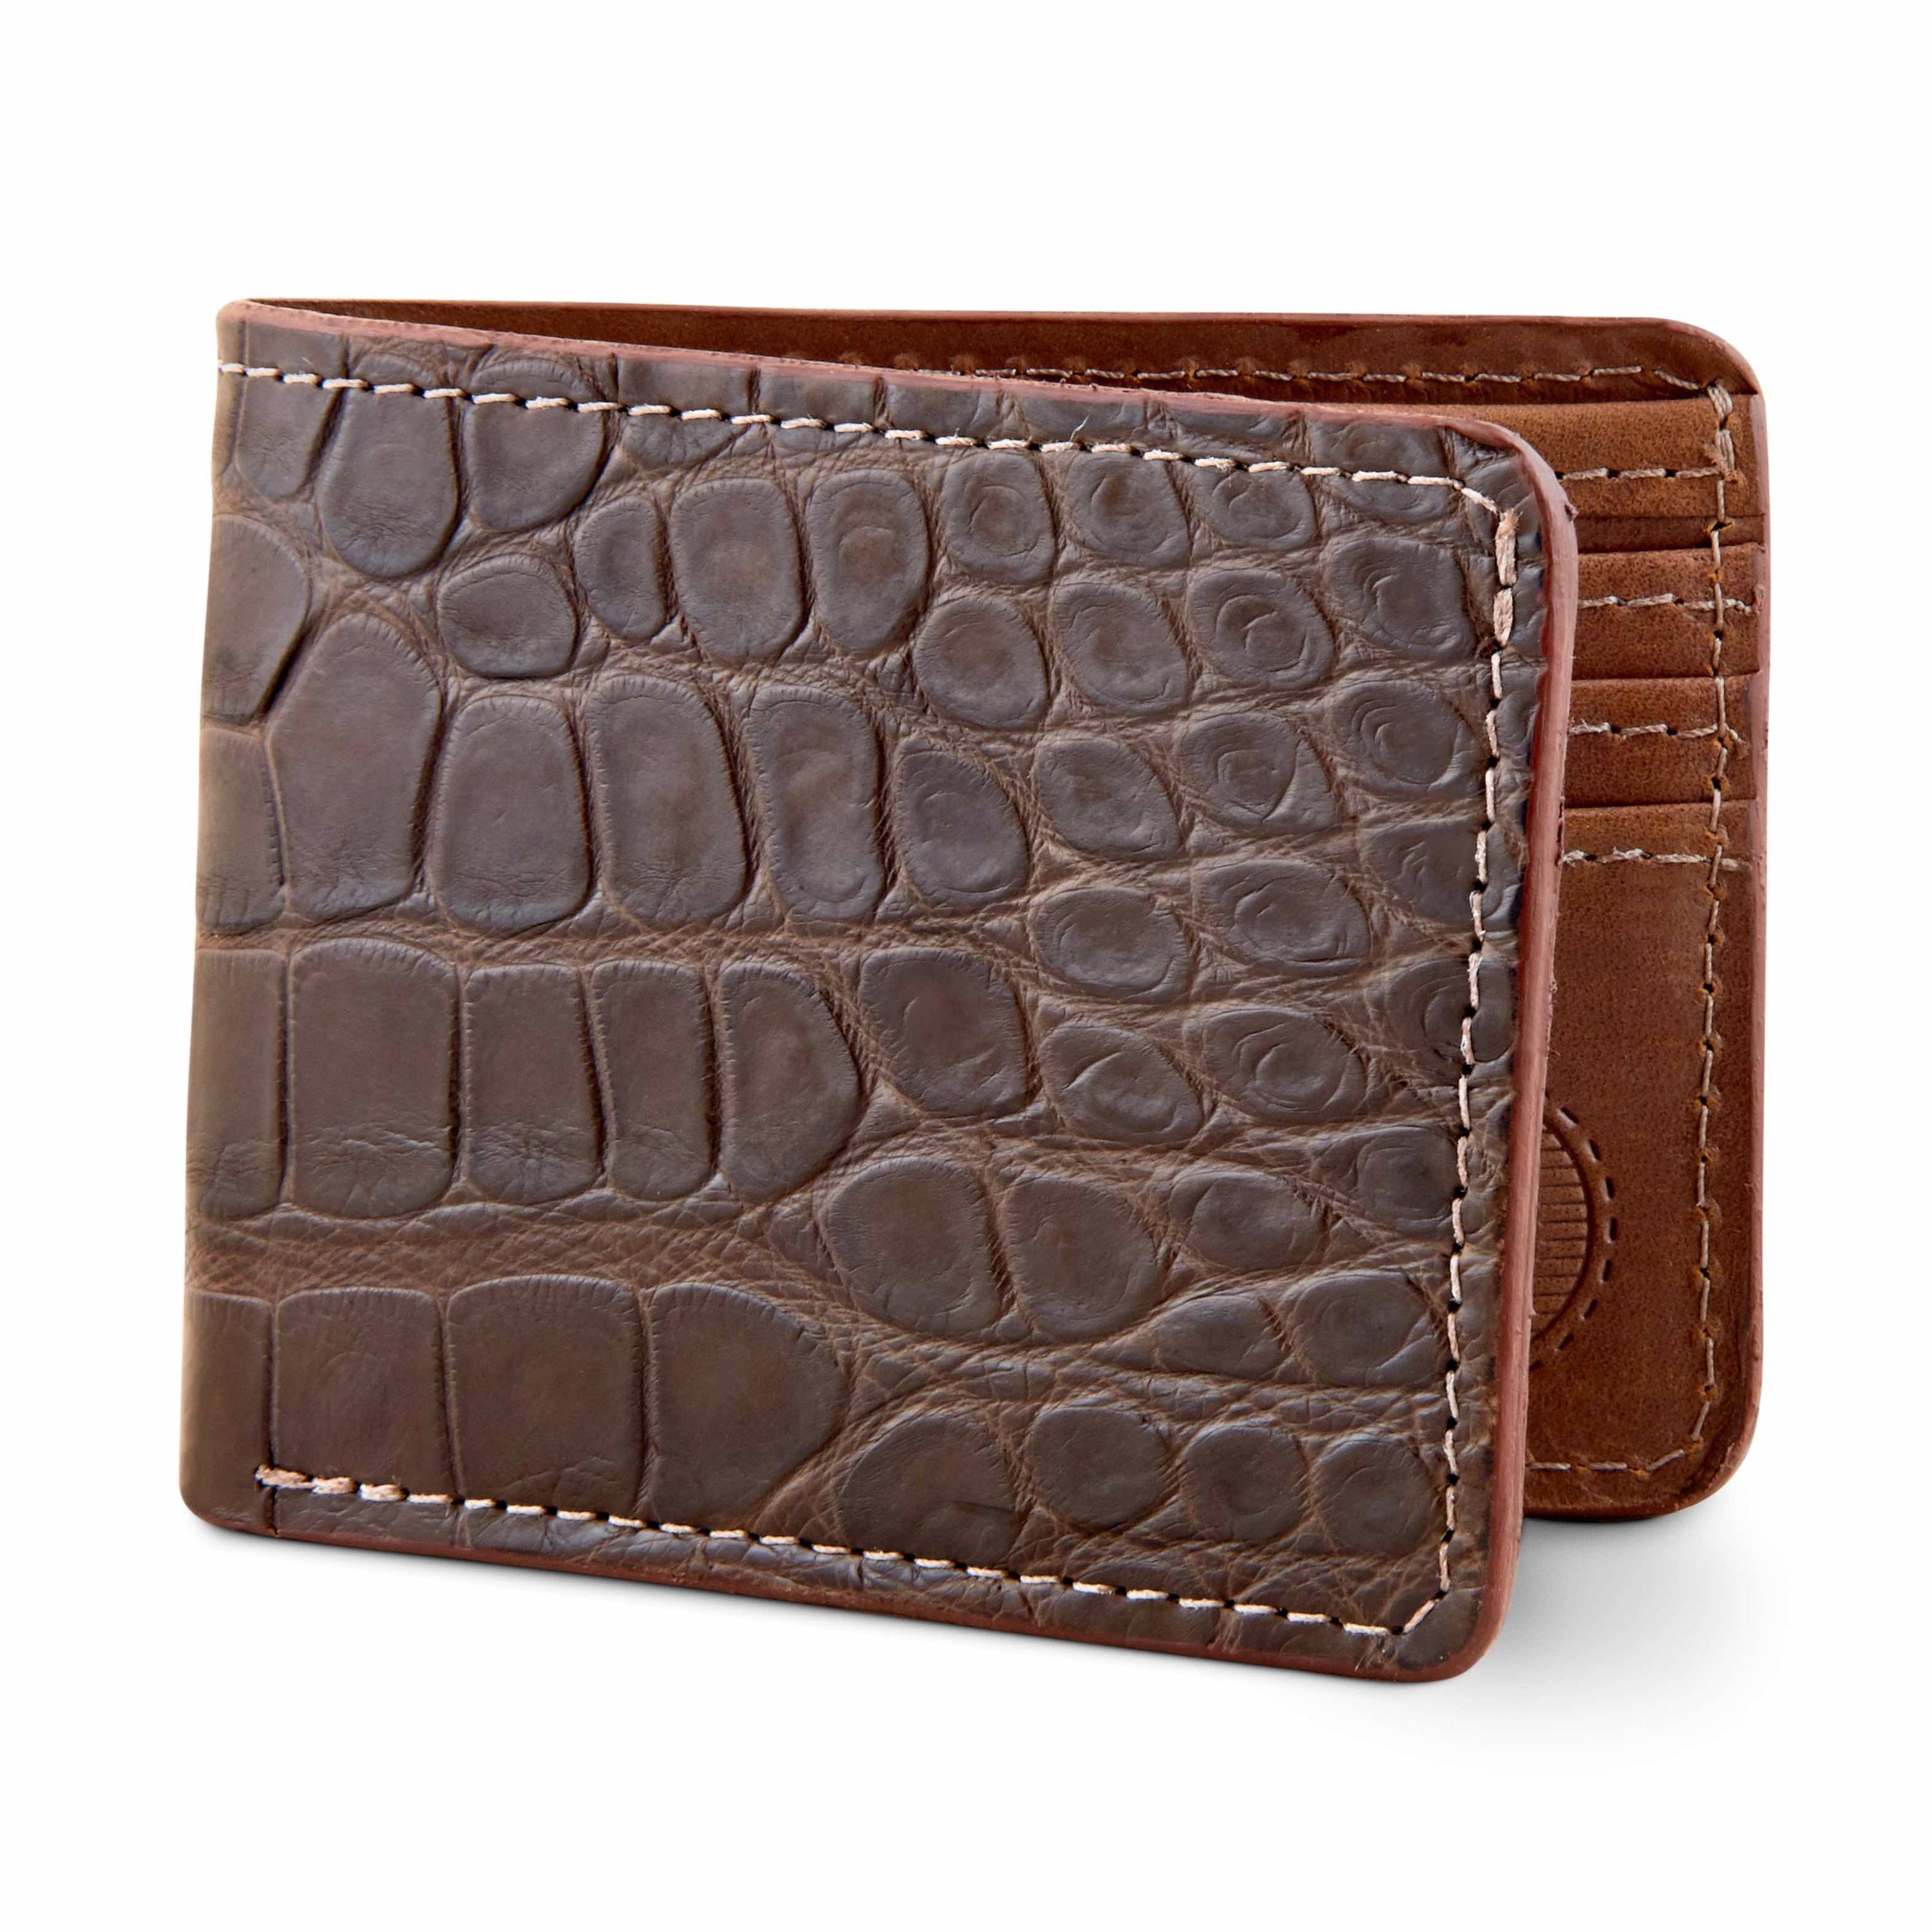 Classic alligator wallets